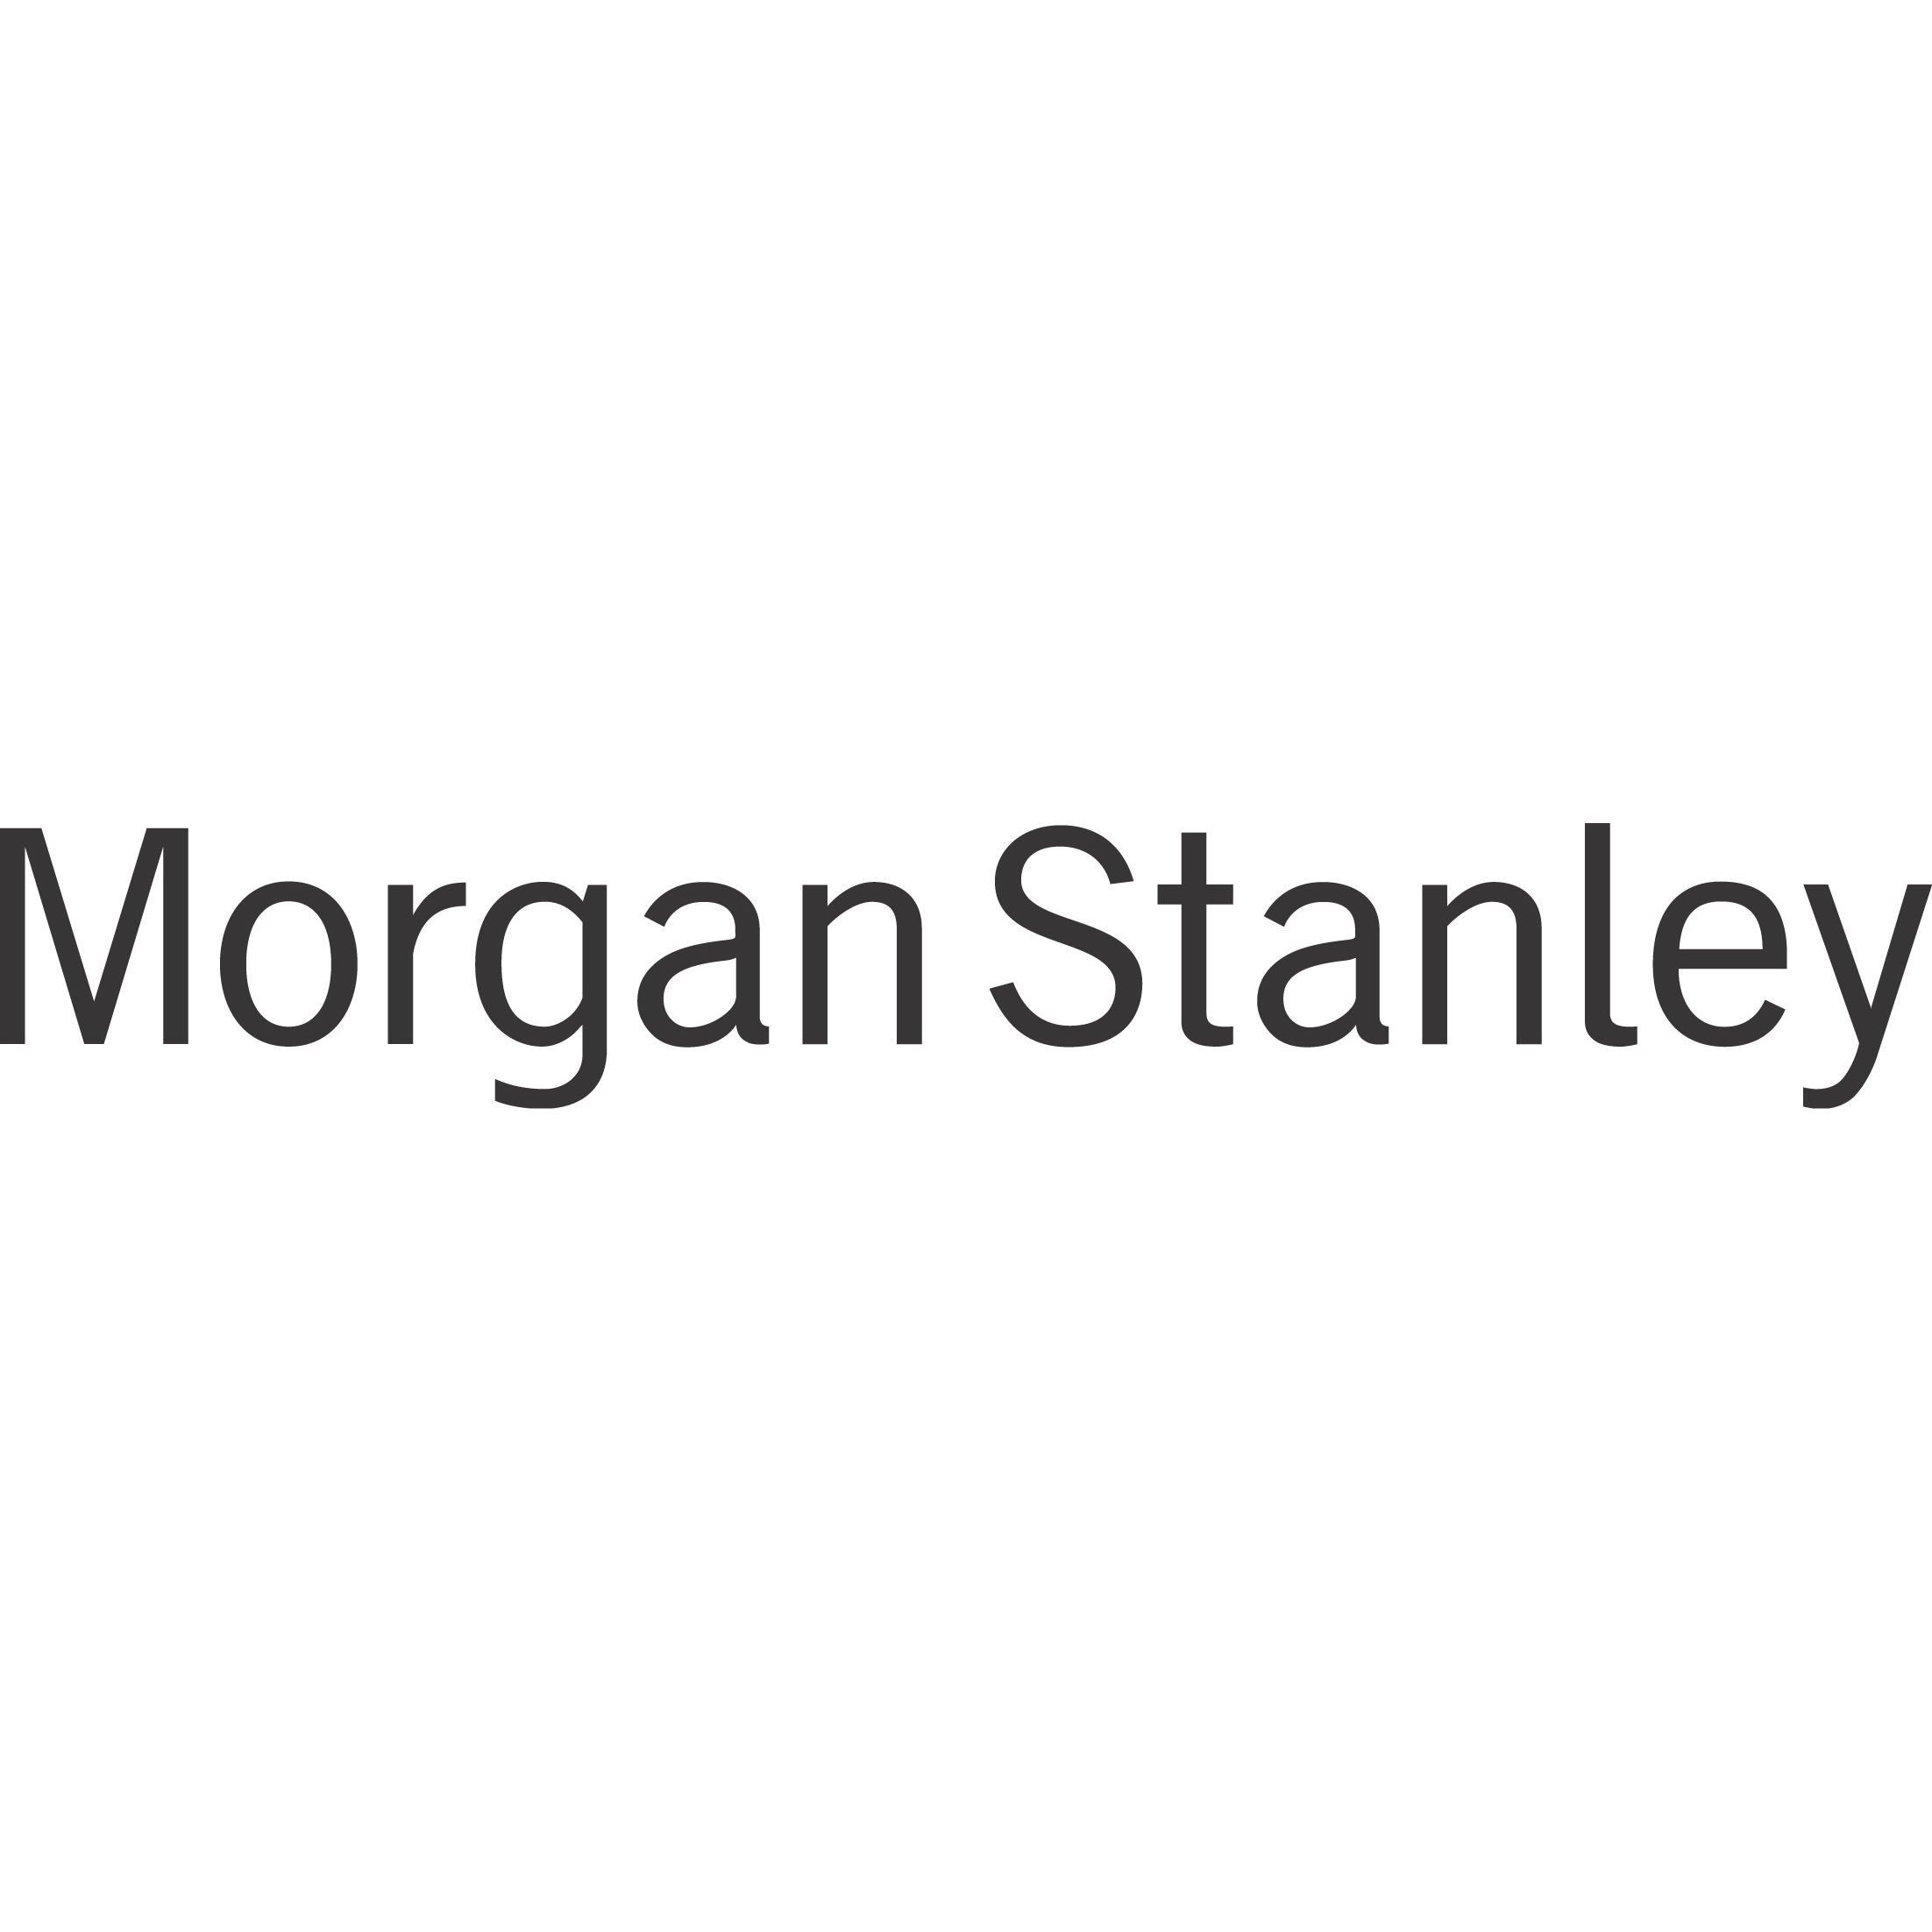 Michael Marchiano - Morgan Stanley | Financial Advisor in Morristown,New Jersey